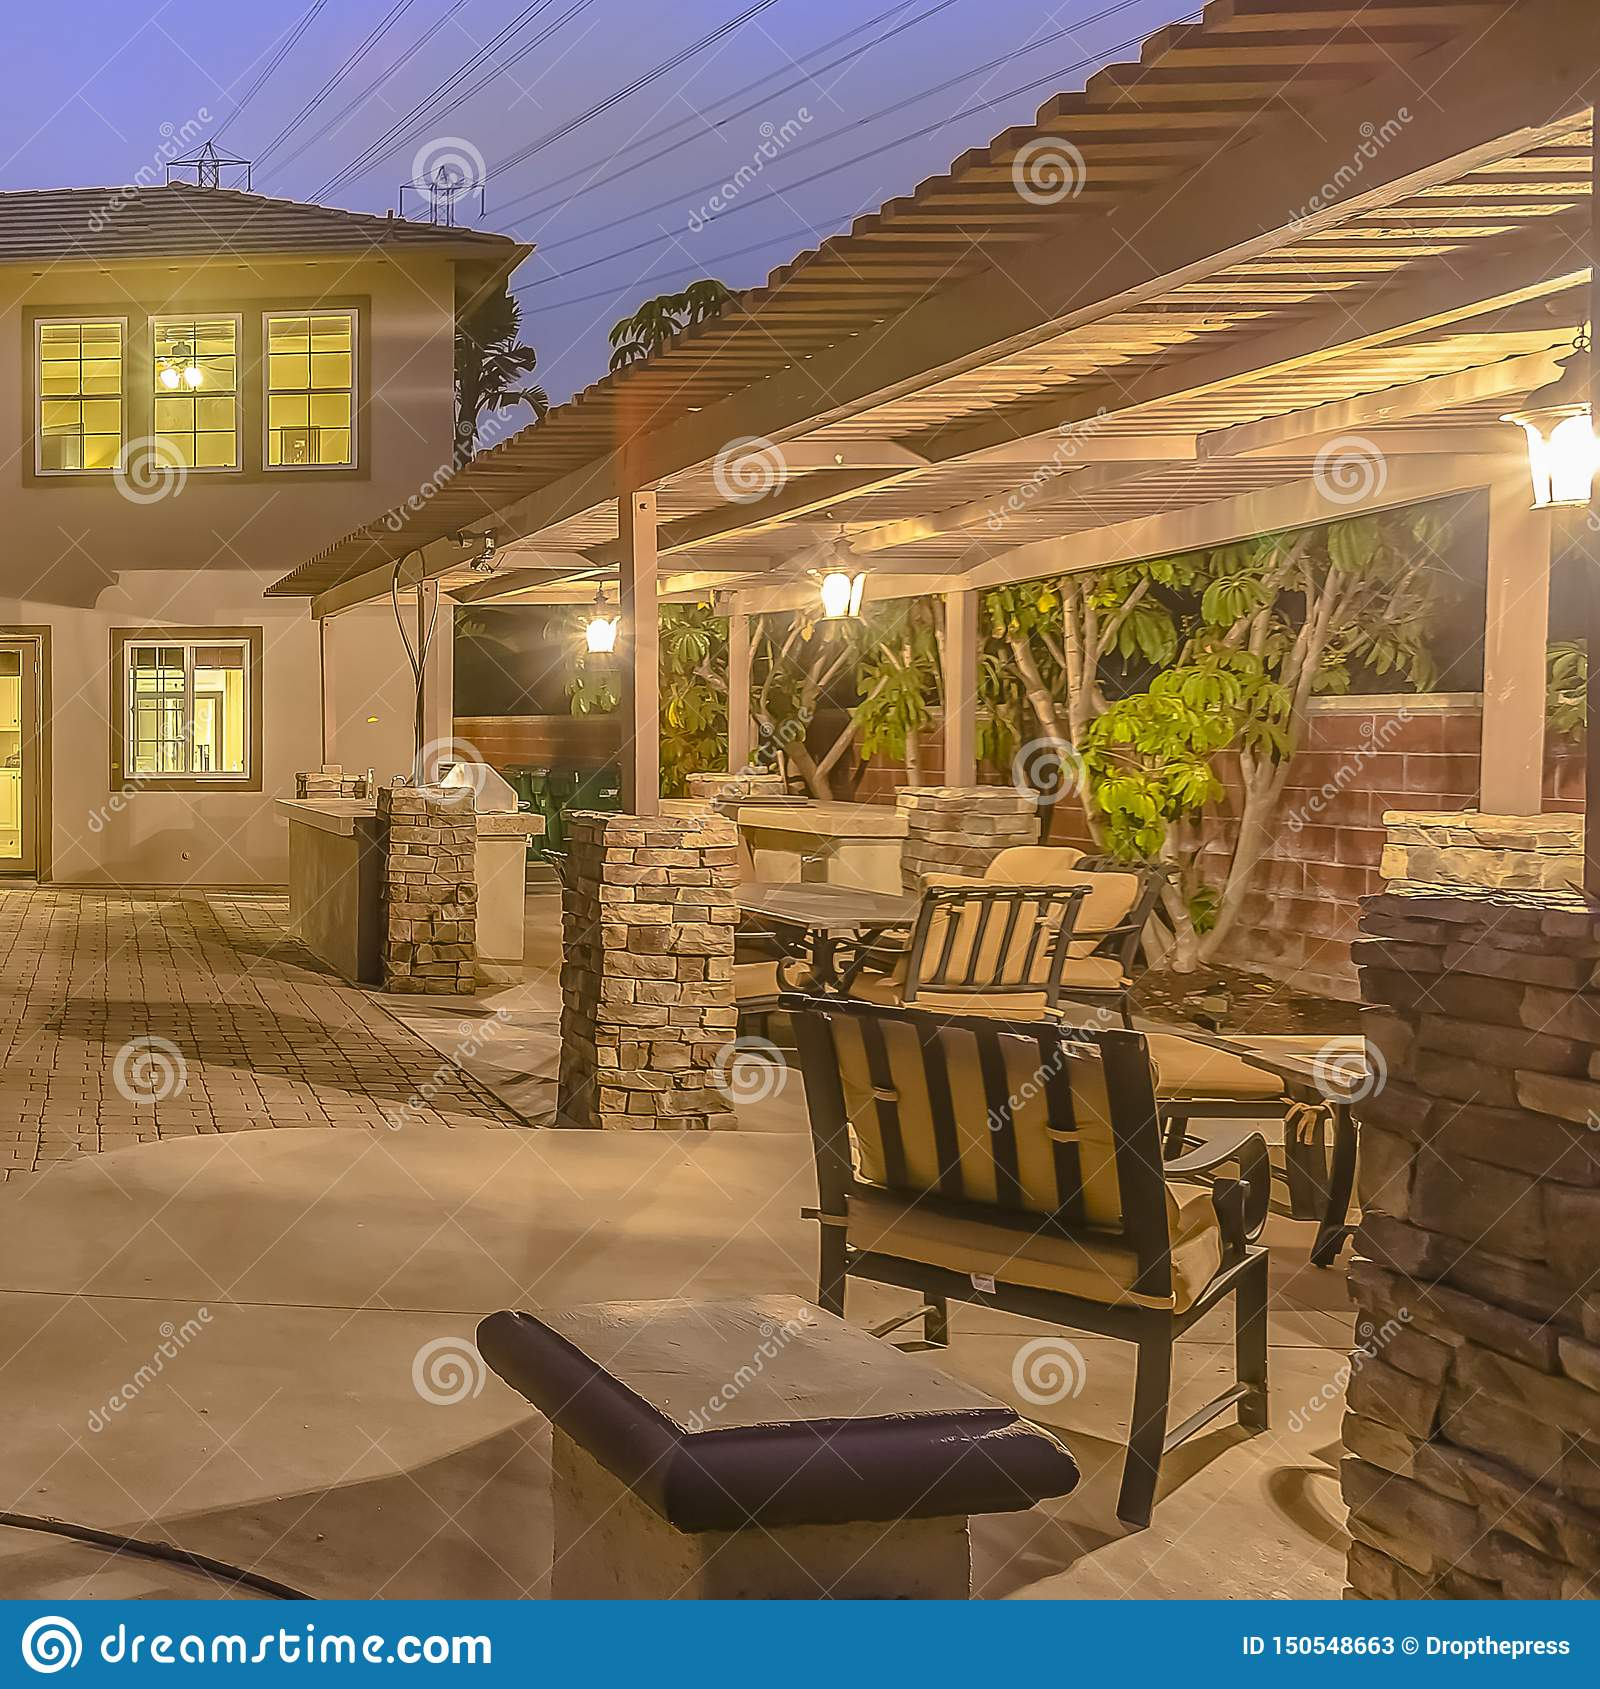 Square Frame Illuminated House With A Patio Accomodating An Outdoor Dining Area And Fire Pit Stock Image Image Of Table Square 150548663